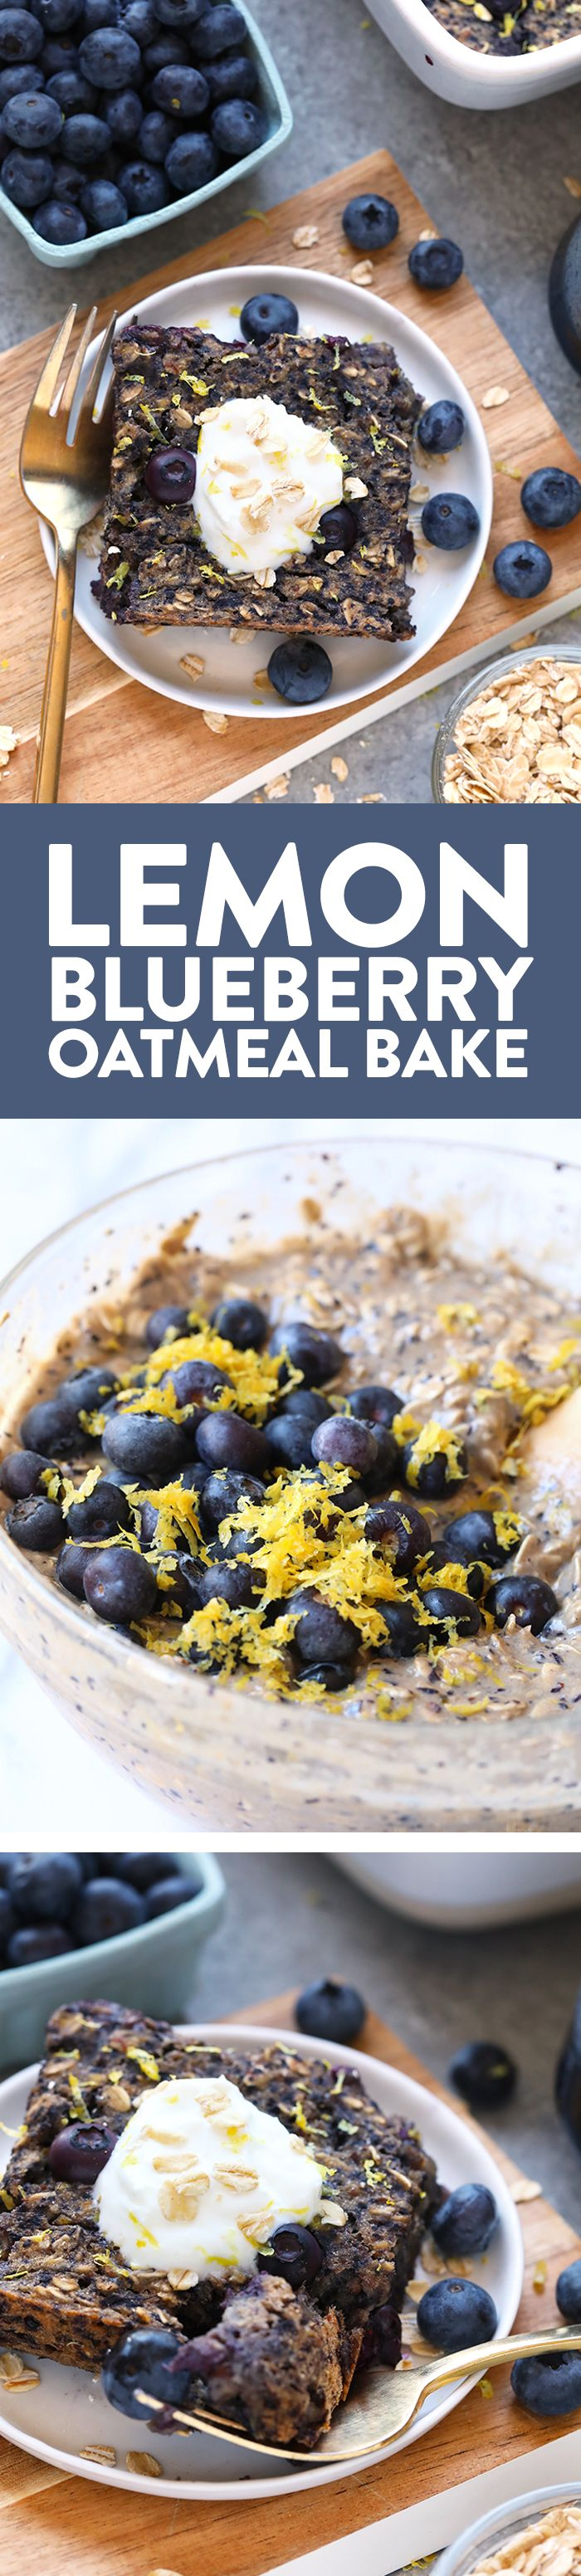 This delicious lemon blueberry baked oatmeal recipe screams spring with the combination of fresh blueberries and lemon zest. This delicious vegan oatmeal bake is made in under an hour and has 100% whole grains and no r